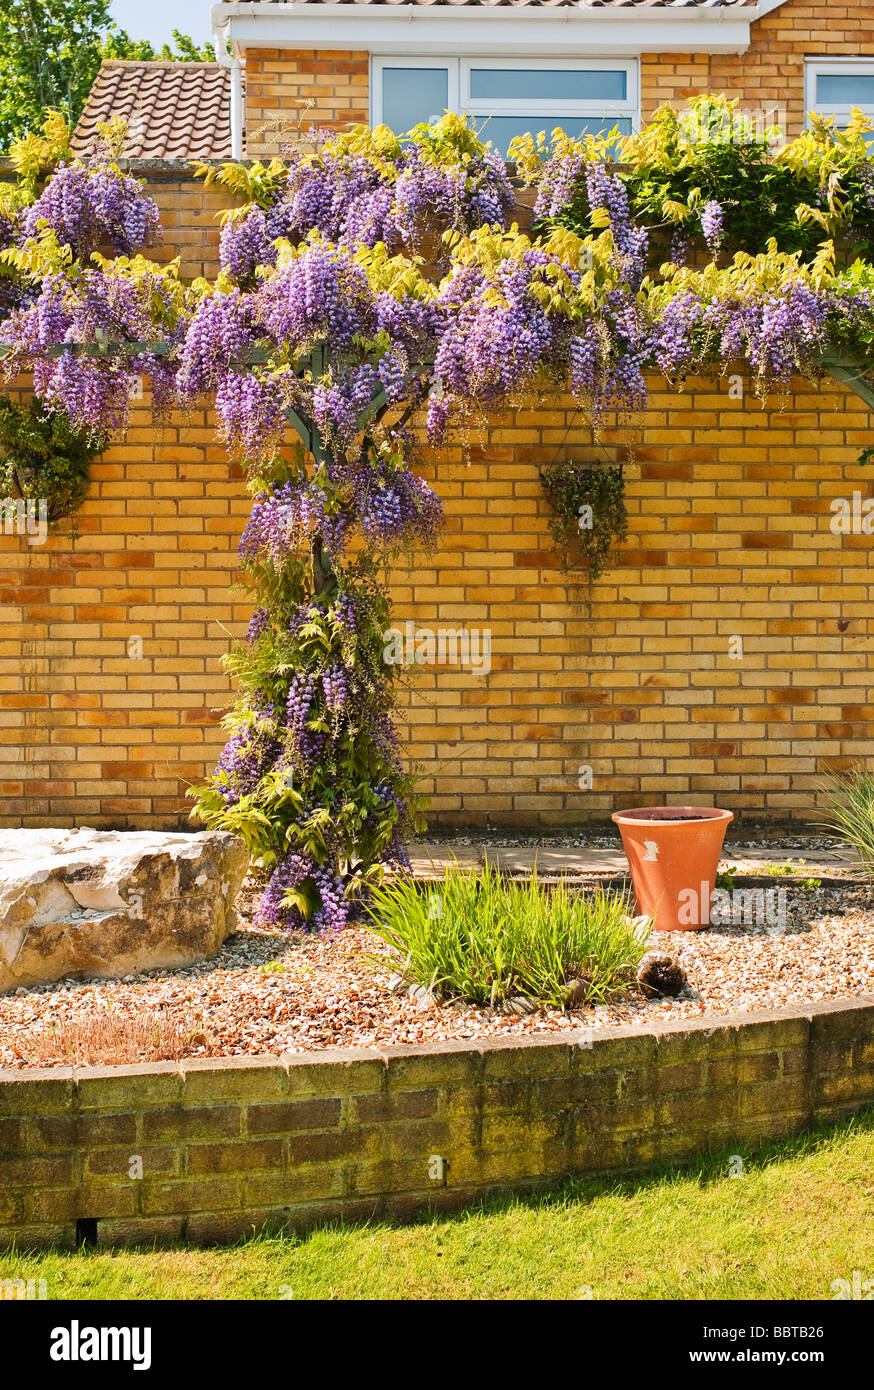 Small garden with raised area and wisteria climber in flower Stock ...